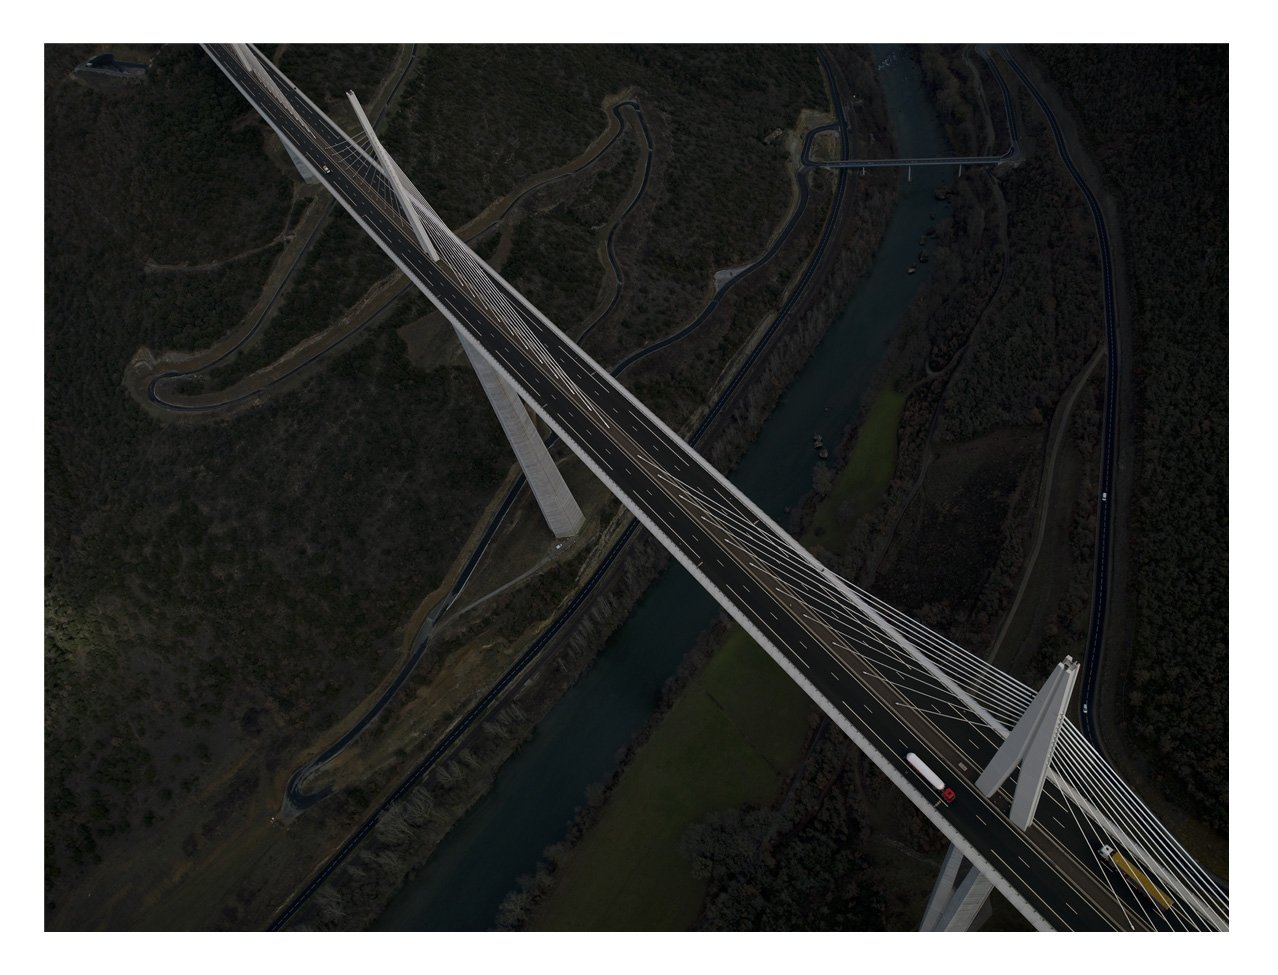 The Millau Viaduct is a cable-stayed road bridge in southern France. It's the tallest vehicular bridge in the world (taller than the Eiffel Tower) and was designed by architect Norman Foster and structural engineer Michel Virlogeux.  Überblick by Thomas Heinser by Aaron Britt